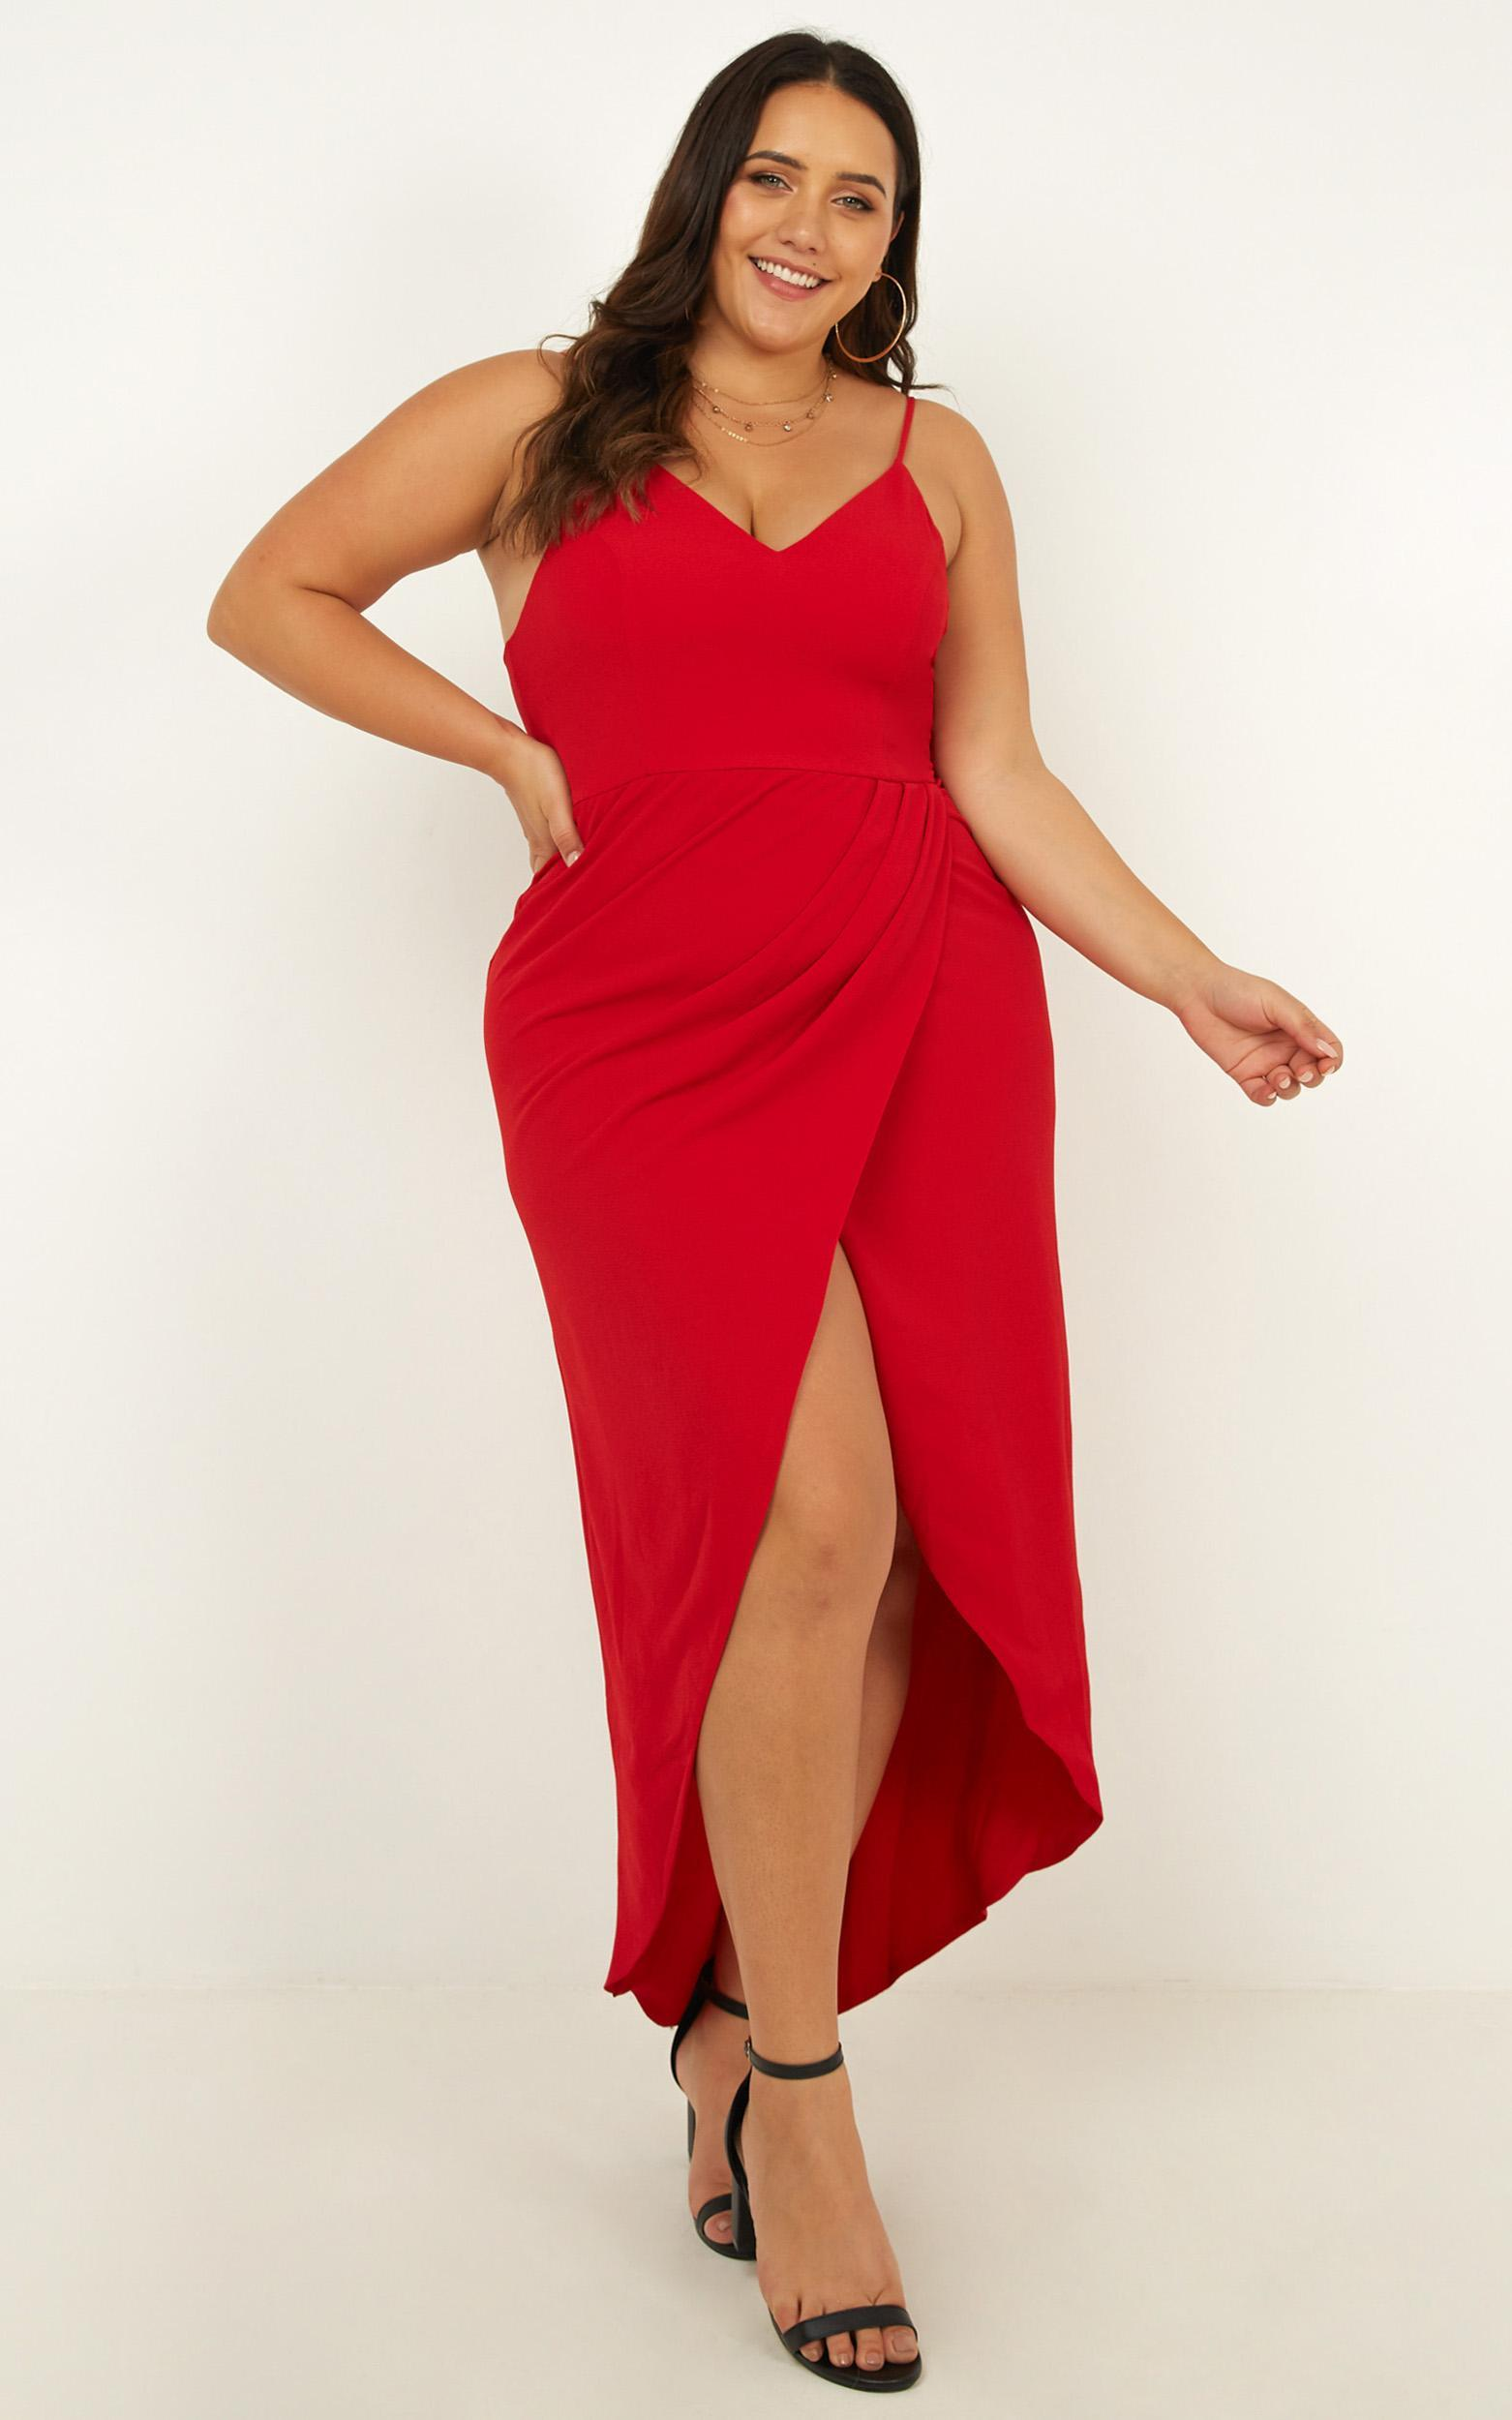 Lucky Day Drape Maxi Dress in Red - 04, RED8, hi-res image number null